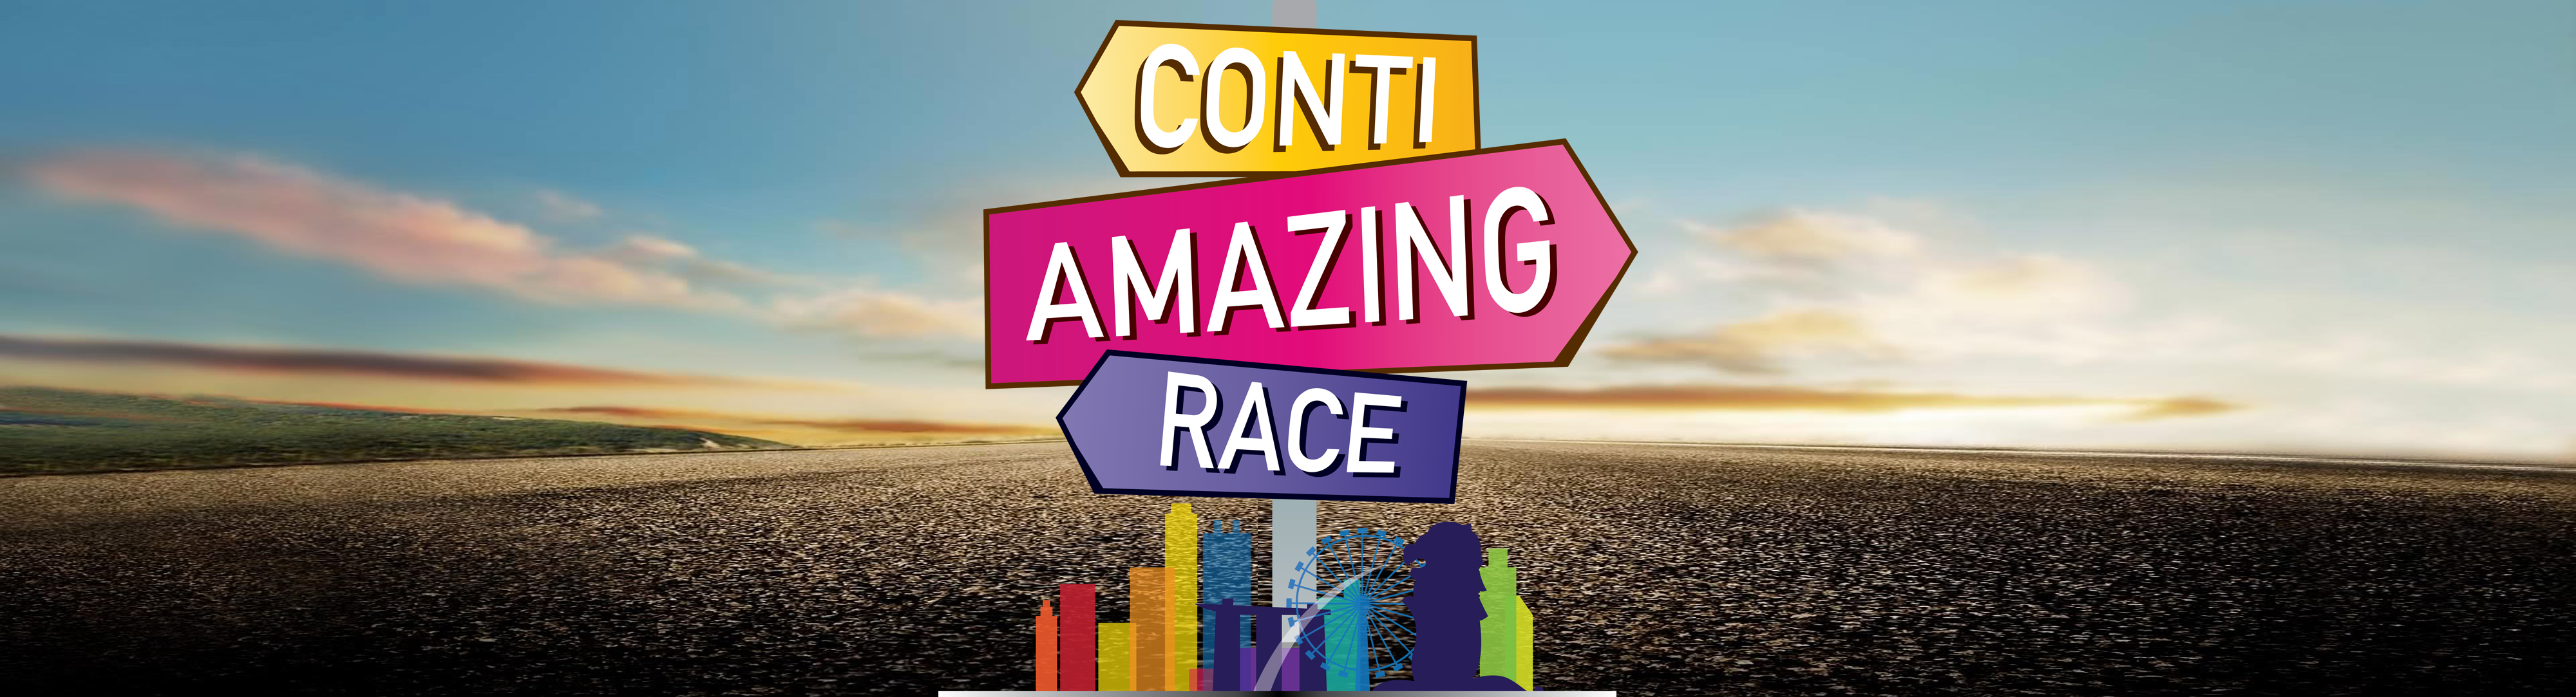 Continental Amazing Race Banner Image